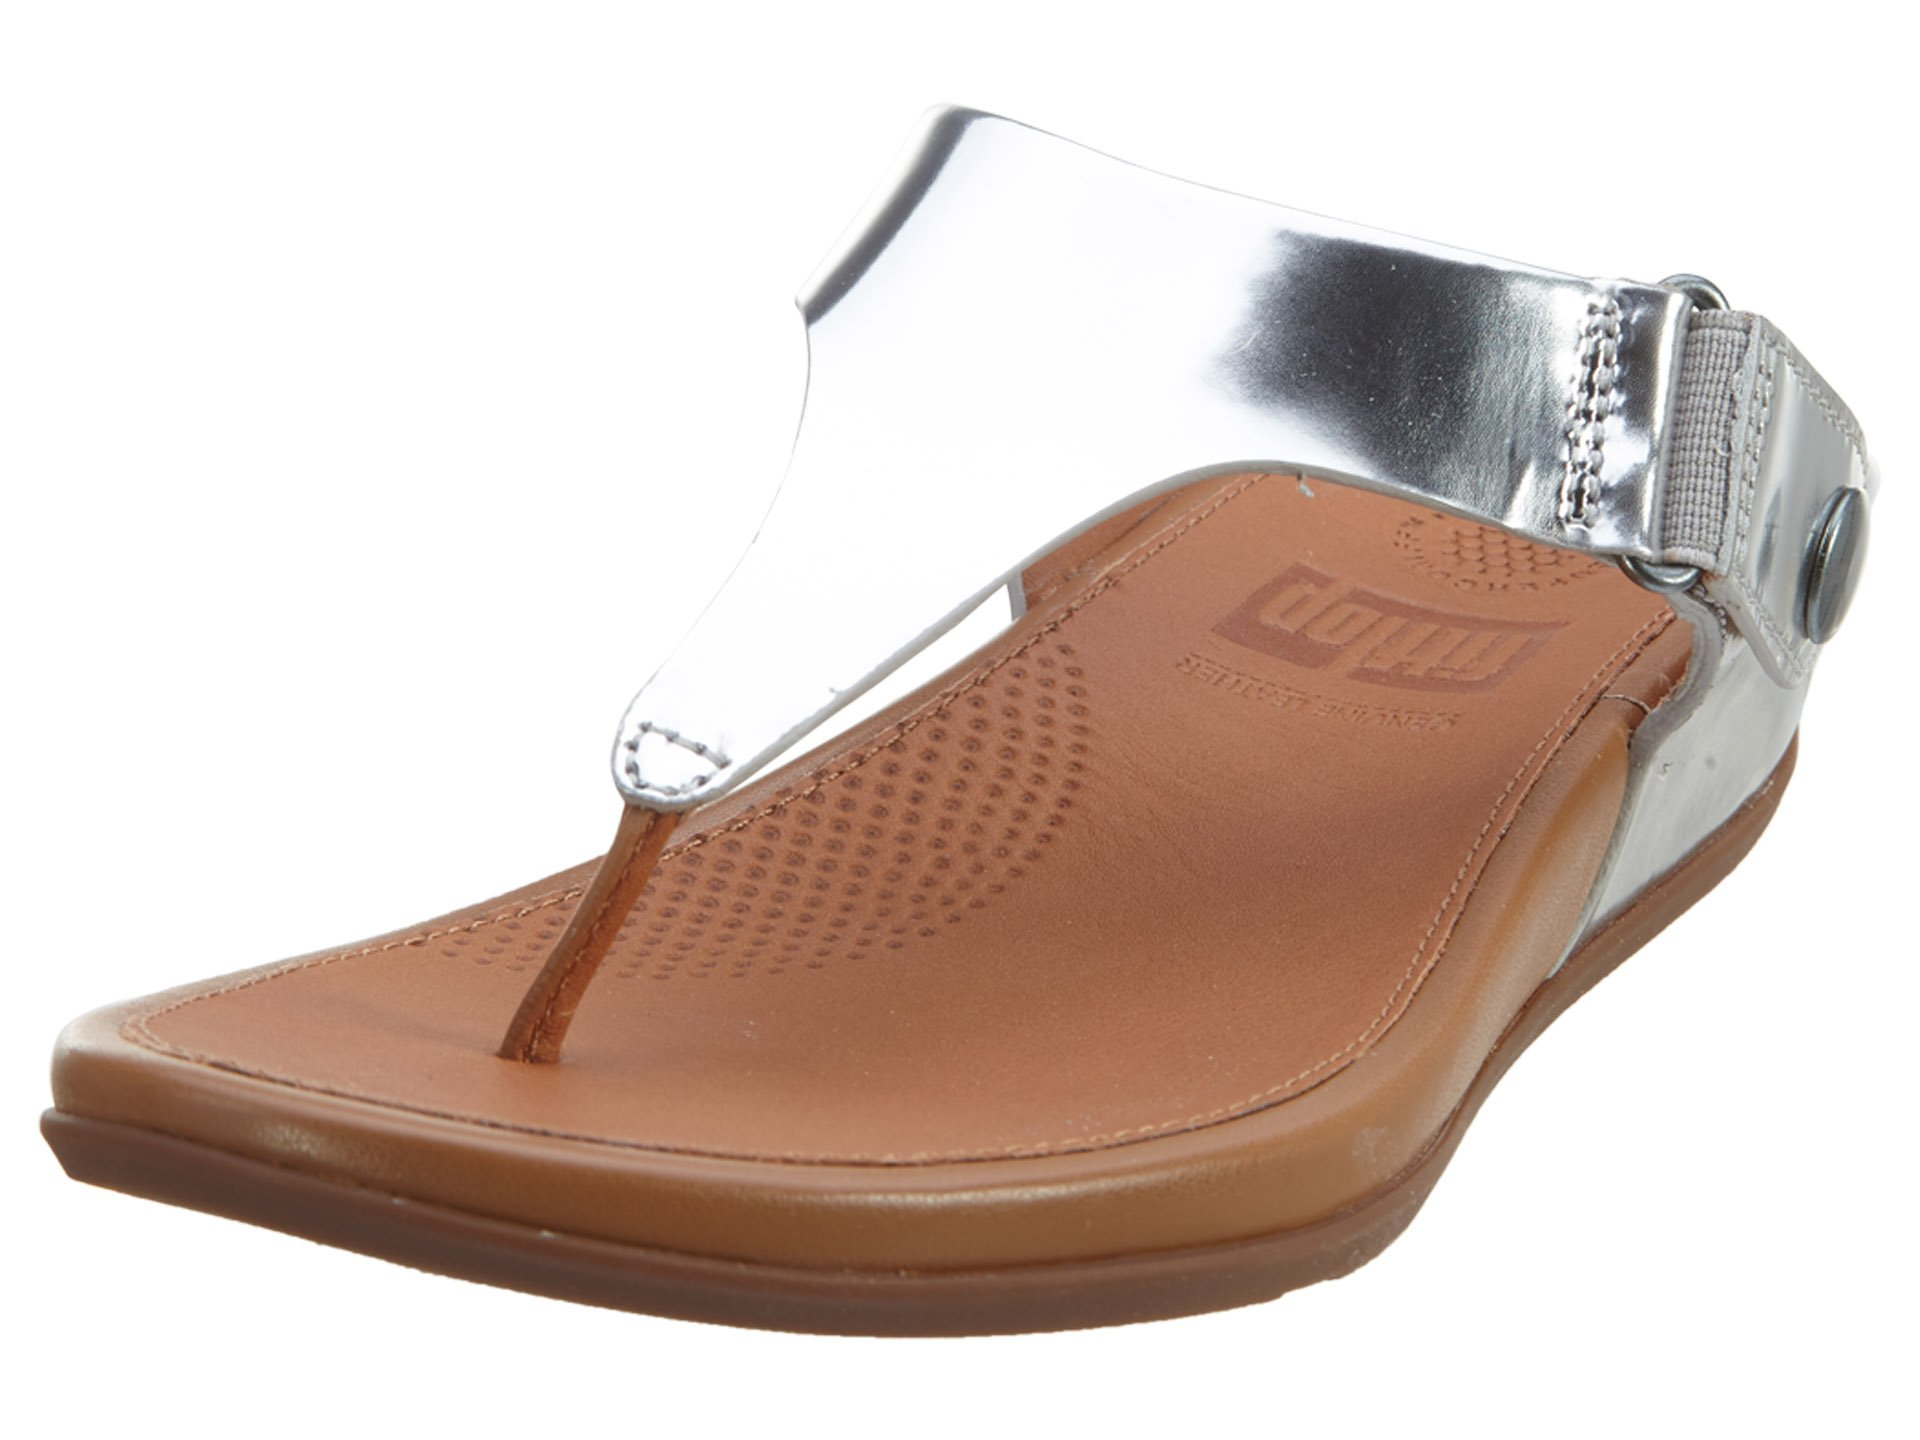 FitFlop trade; Gladdie™ Metallic Toe-Post Sandal Silver Size 6